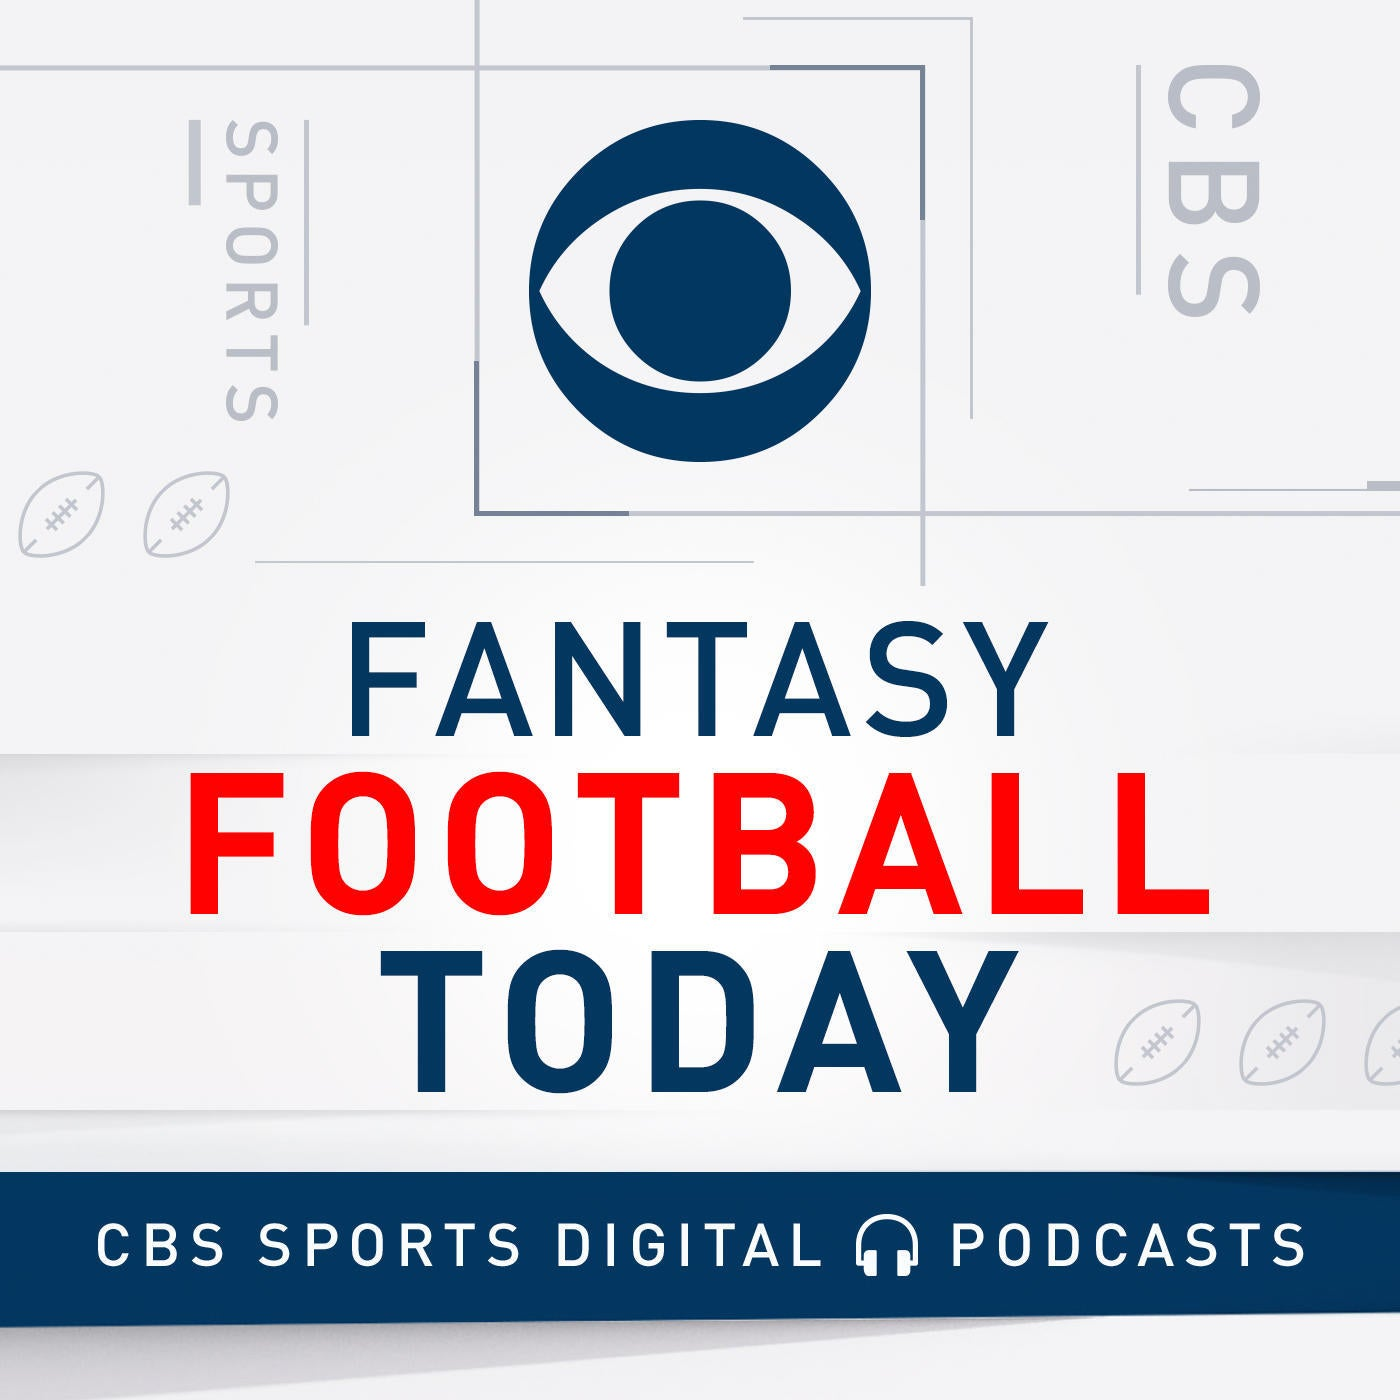 pittsburgh steelers nfl cbssports com